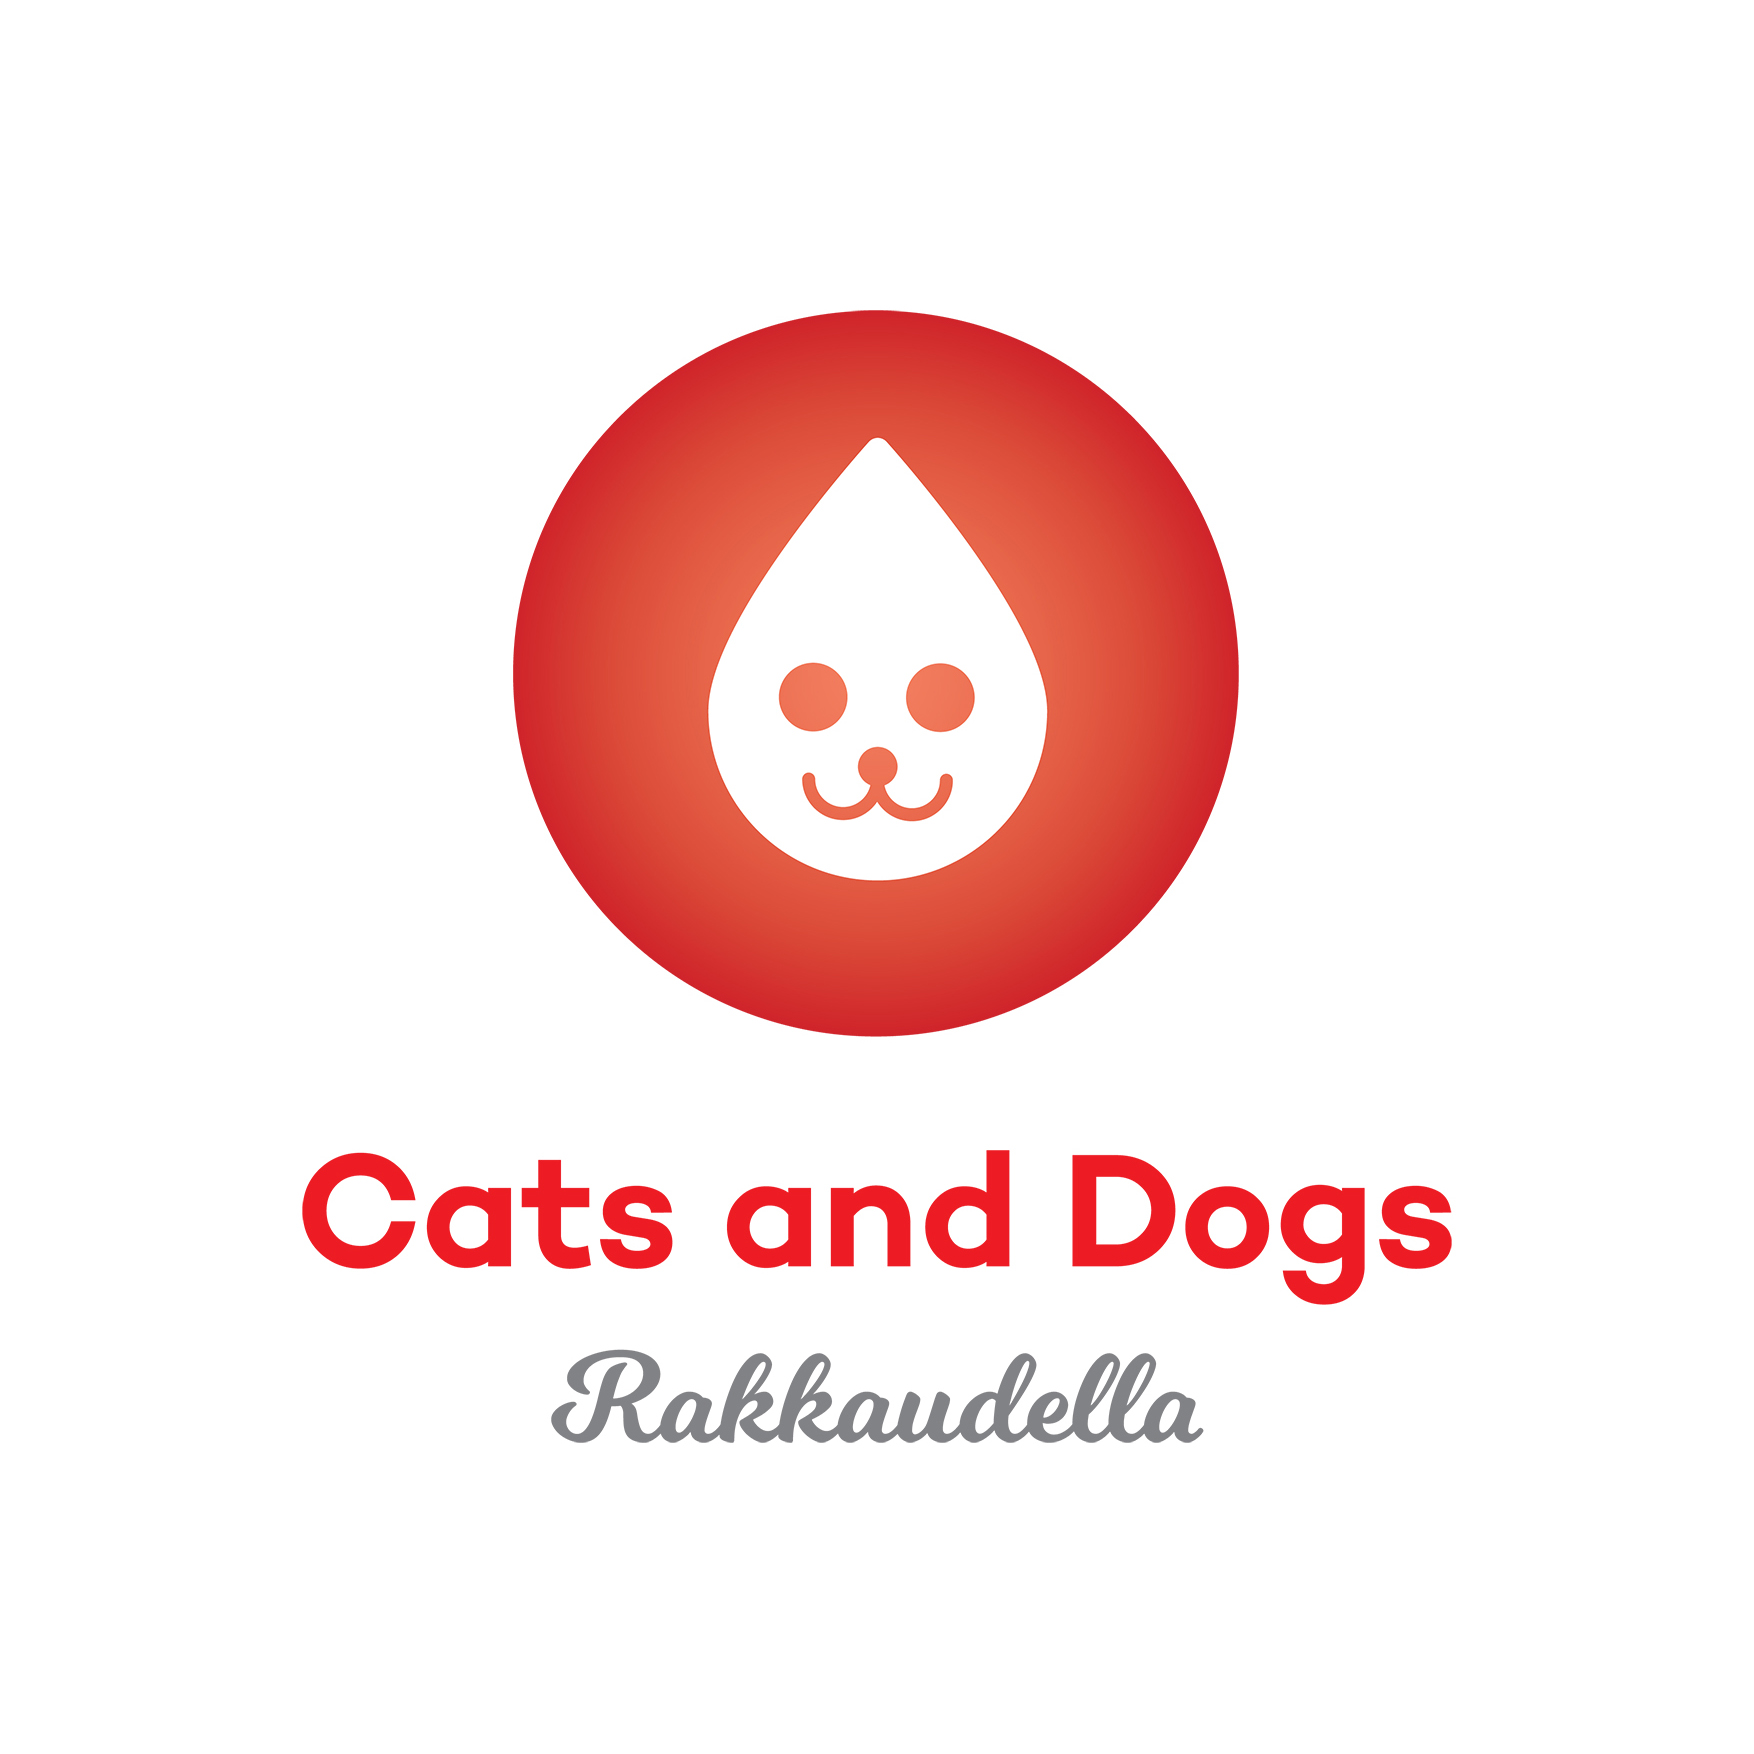 Cats and Dogs, Rakkaudella